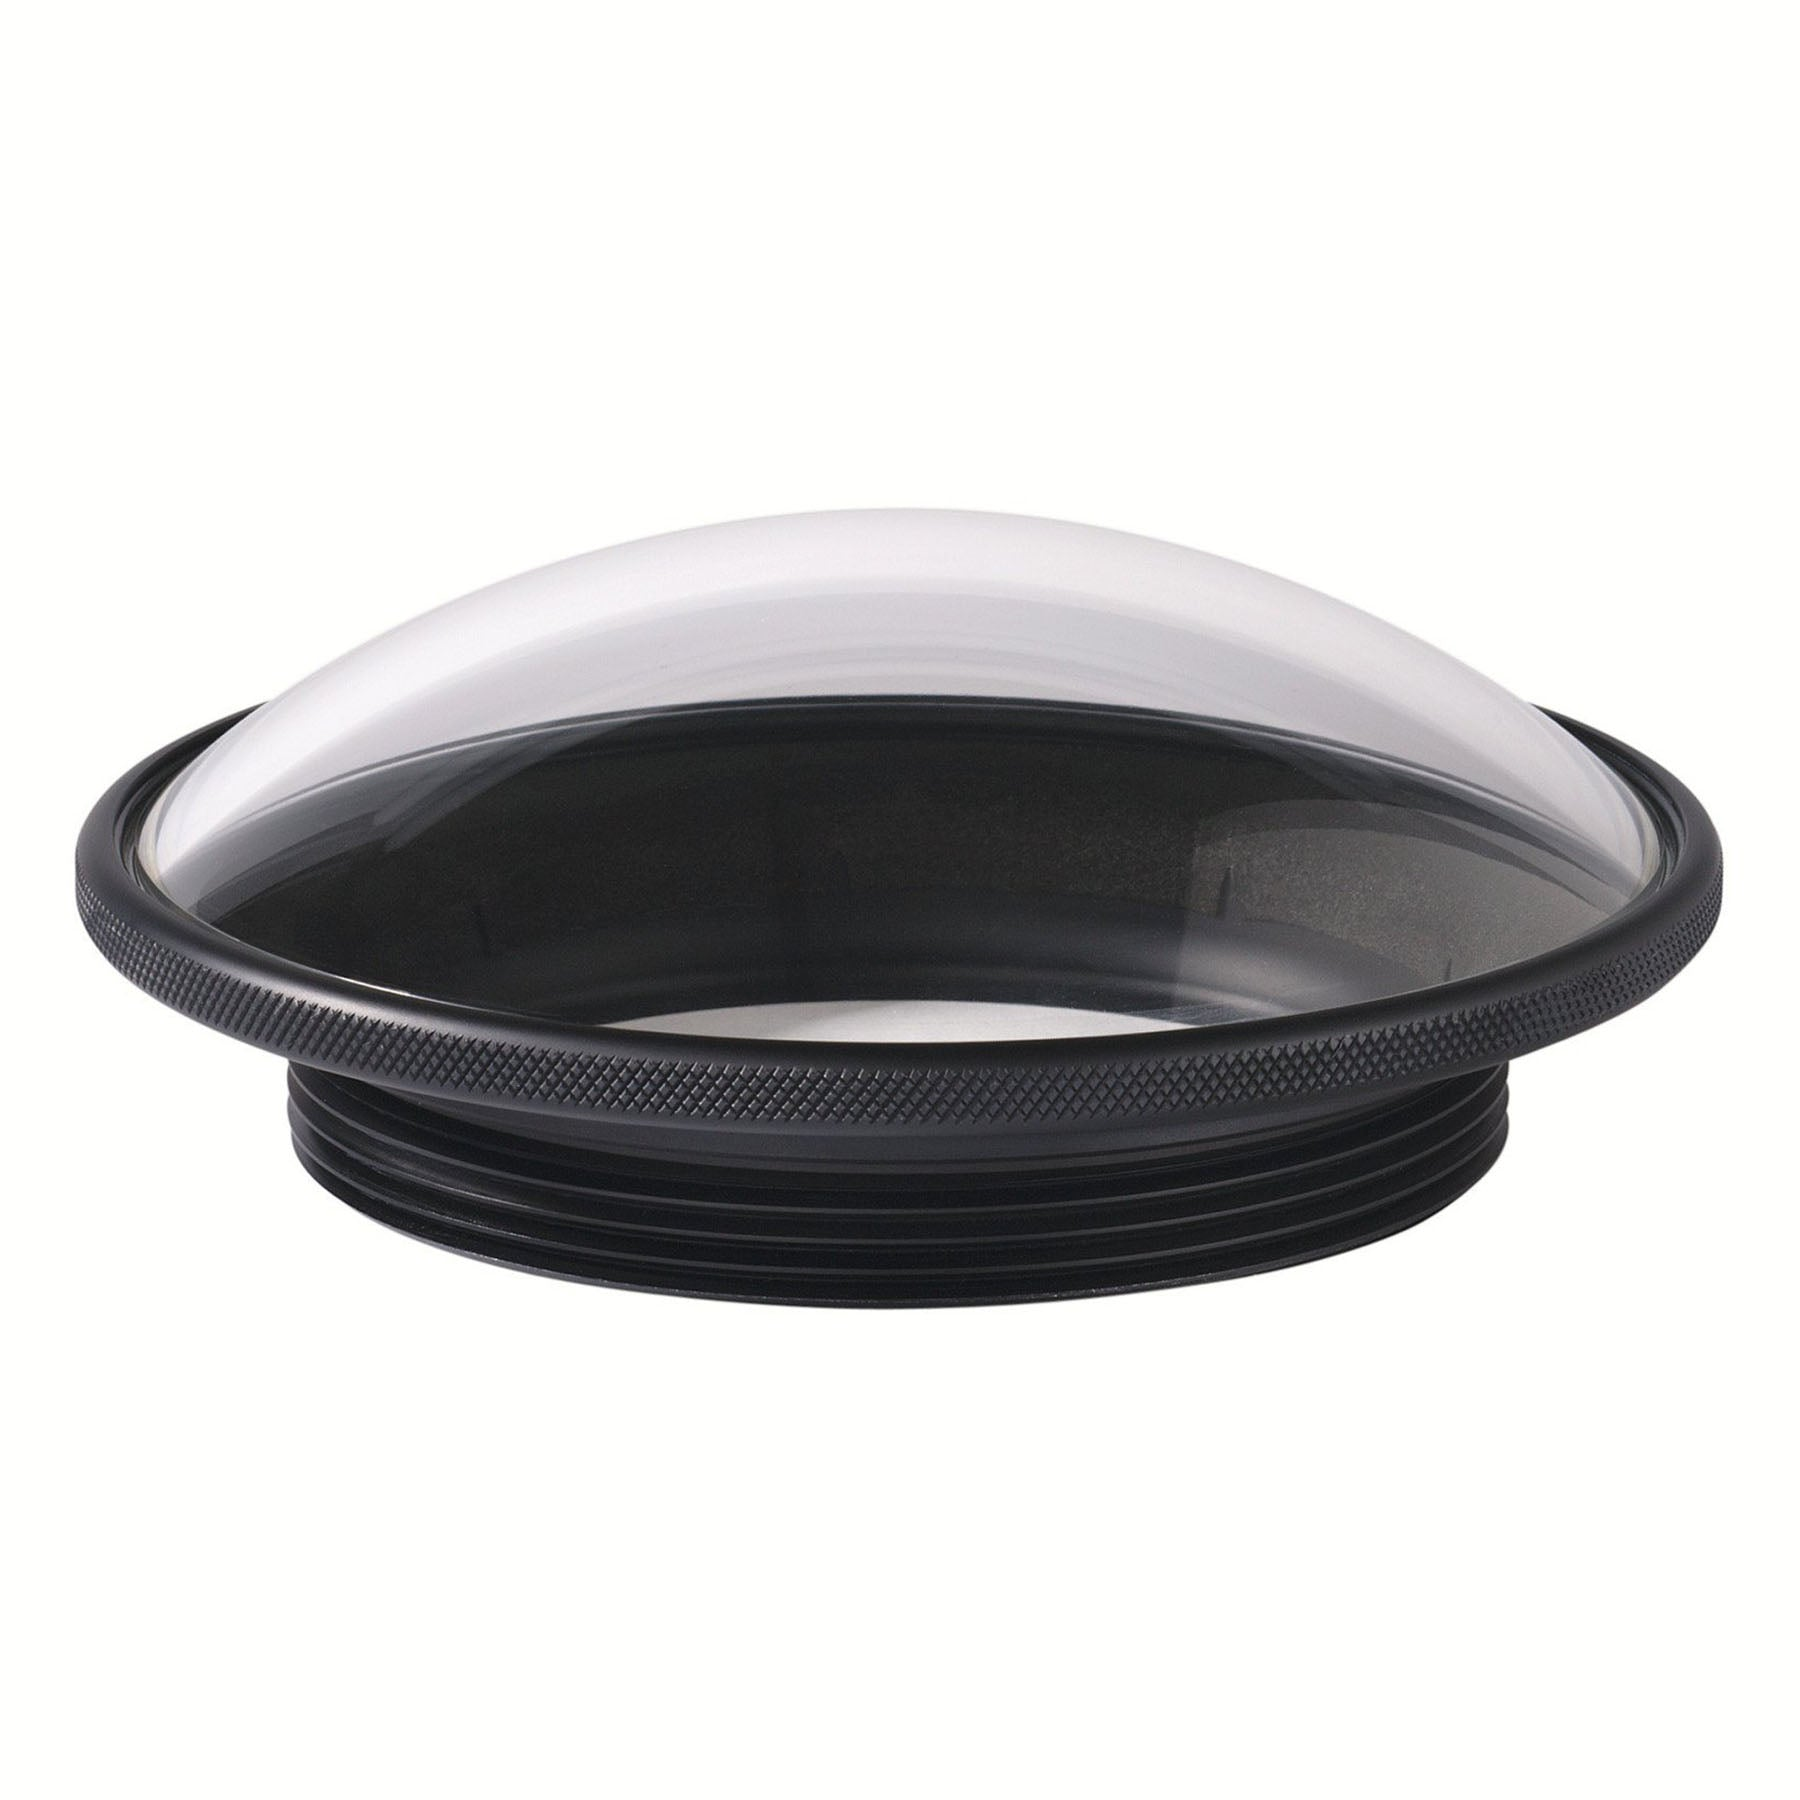 AquaTech PD-75 Lens Dome Port for Underwater Housing